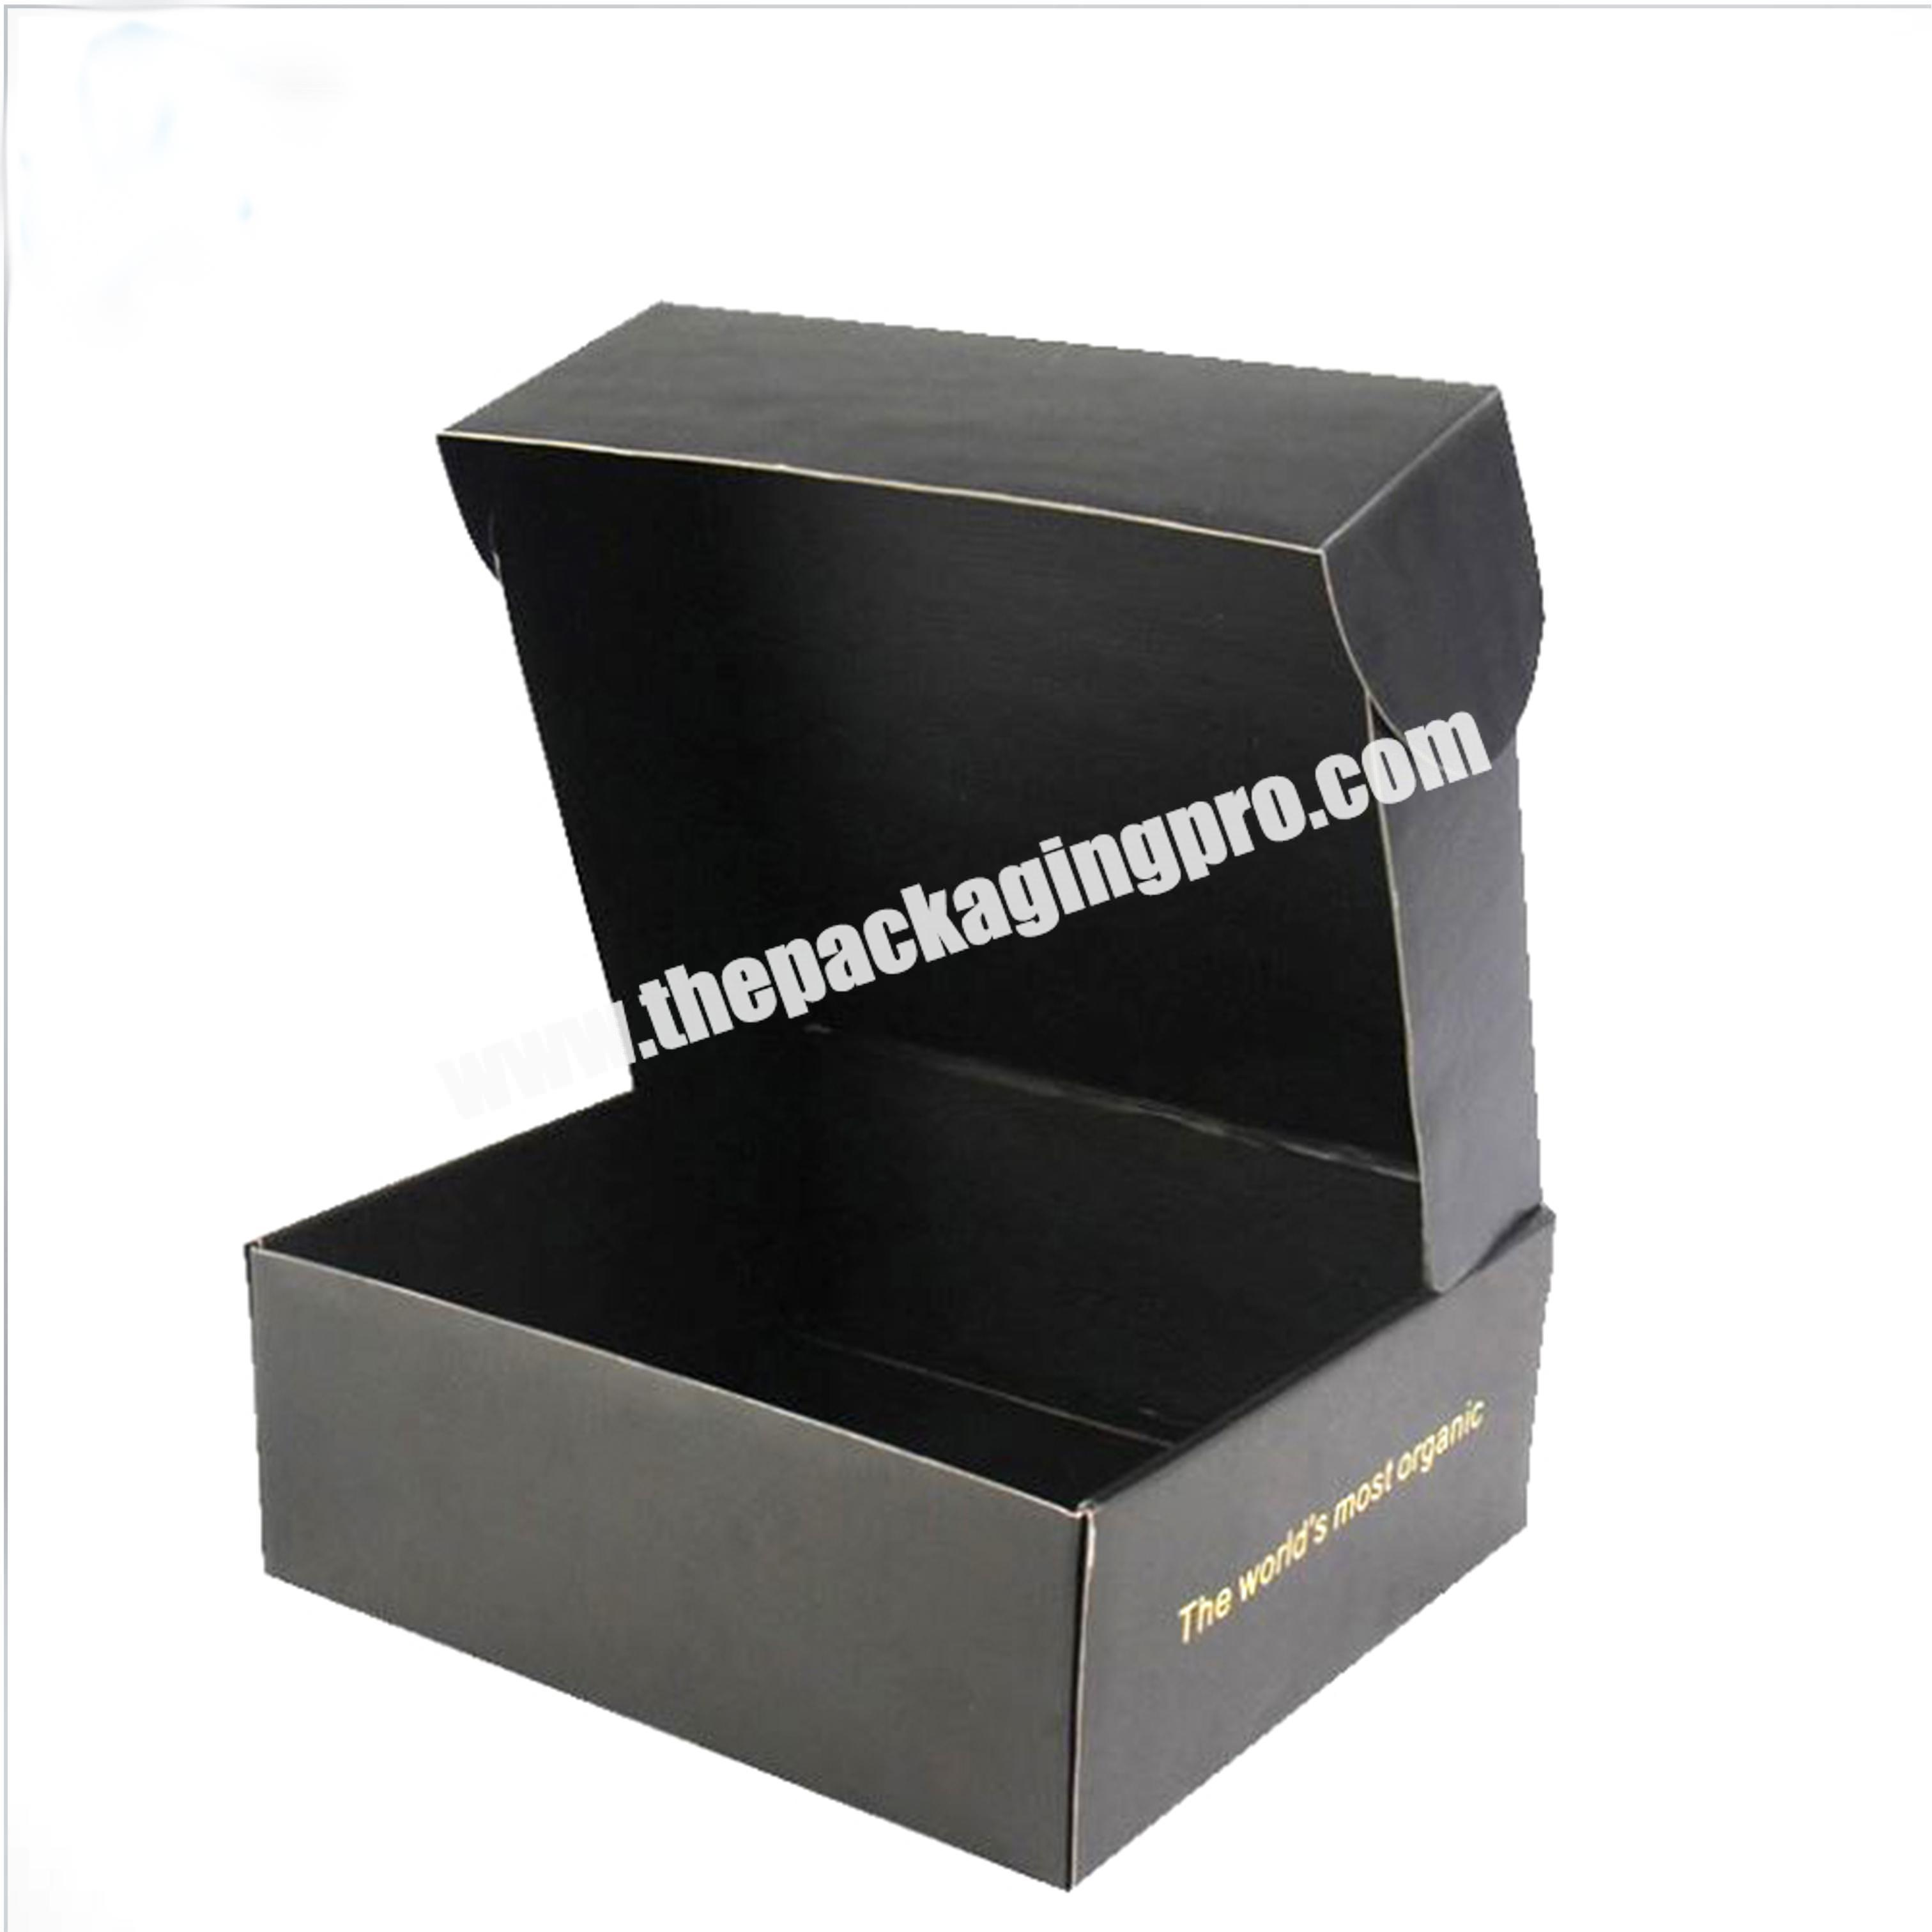 Supplier Direct Factory Shipping Paper Postal Box Flute Corrugated Postage Carton Full Black Mailing Box